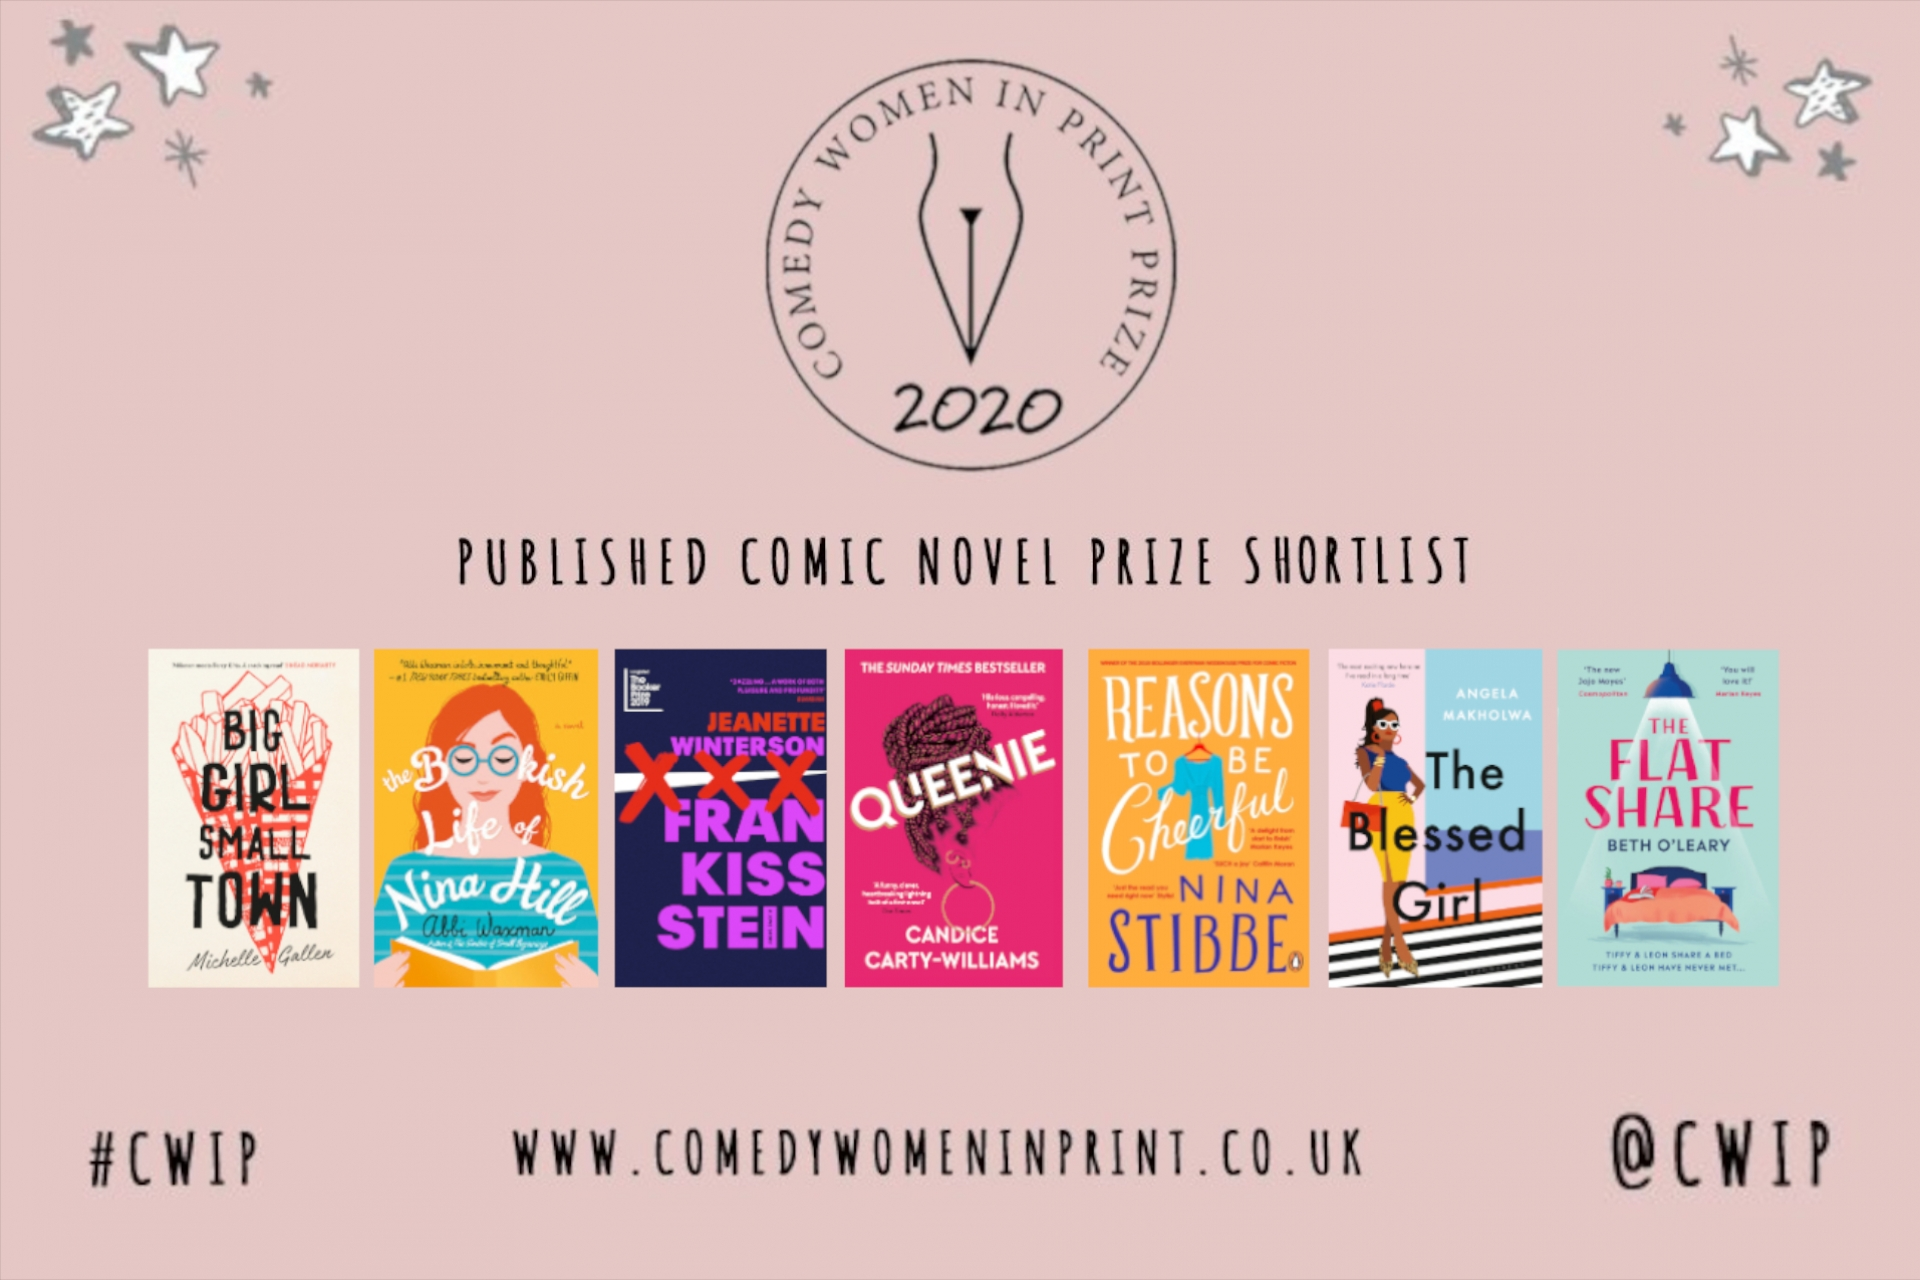 Comedy Women in Print Prize 2020 Shortlist!